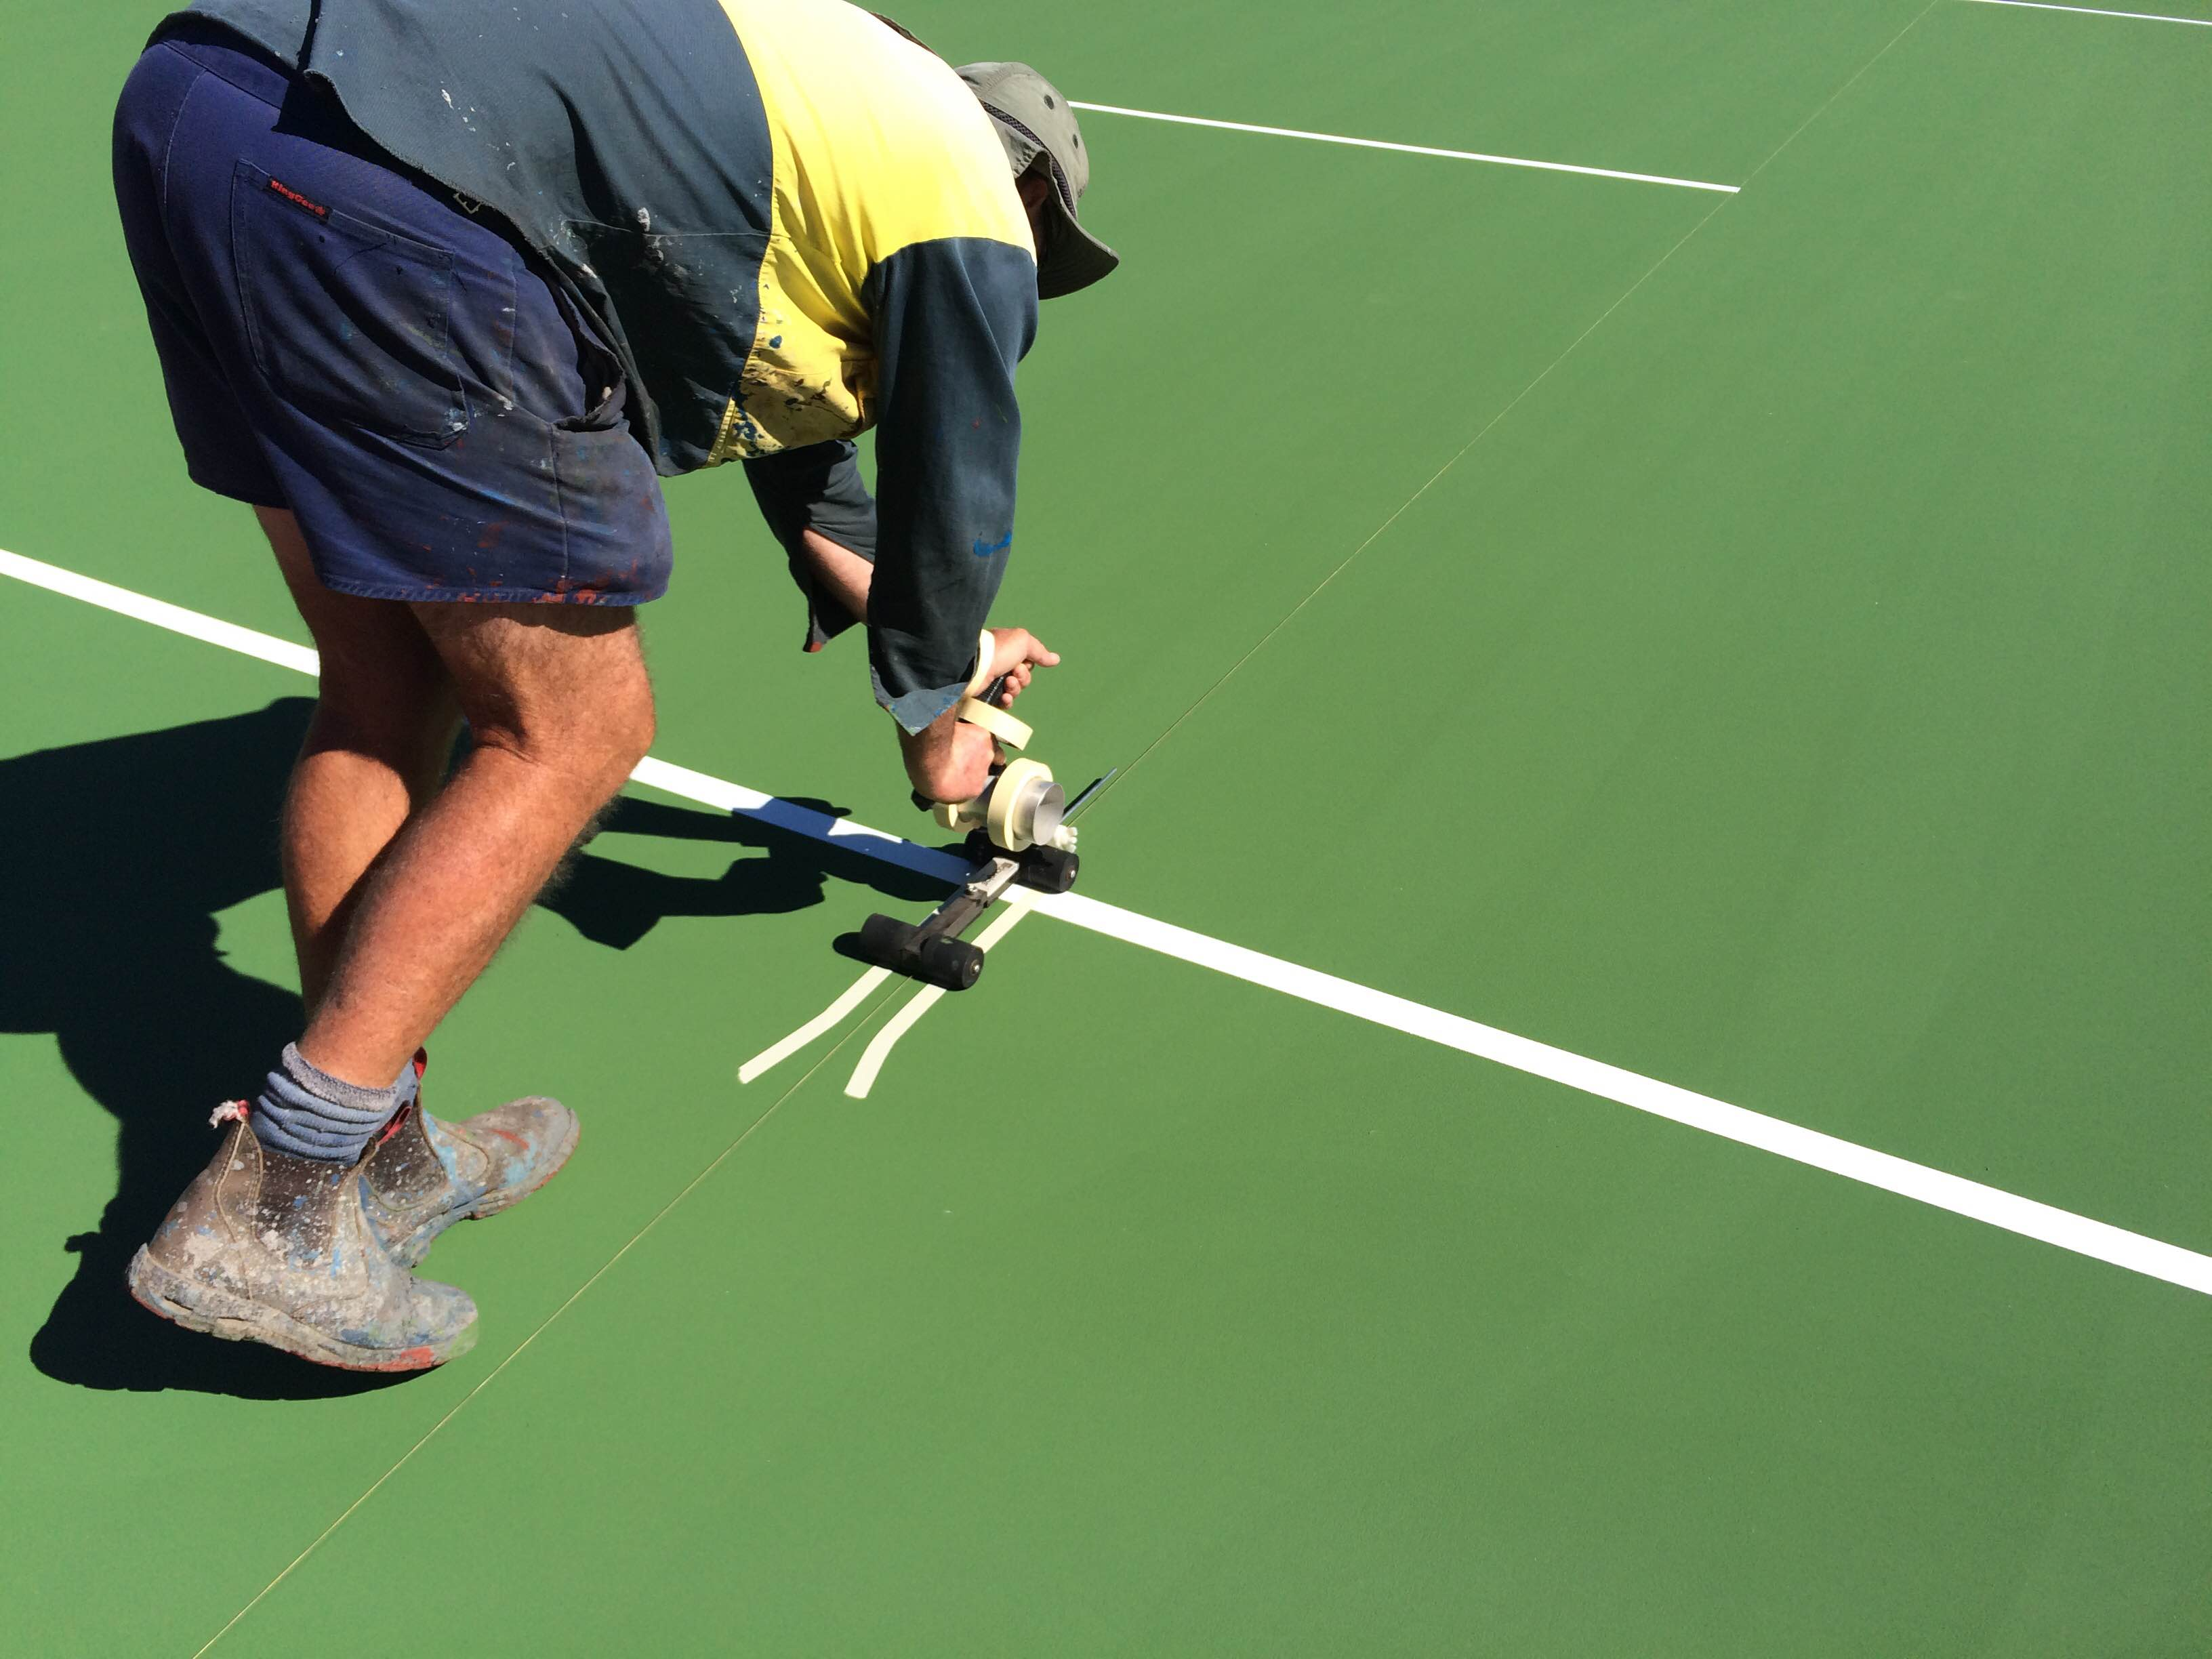 Linemarking preparations